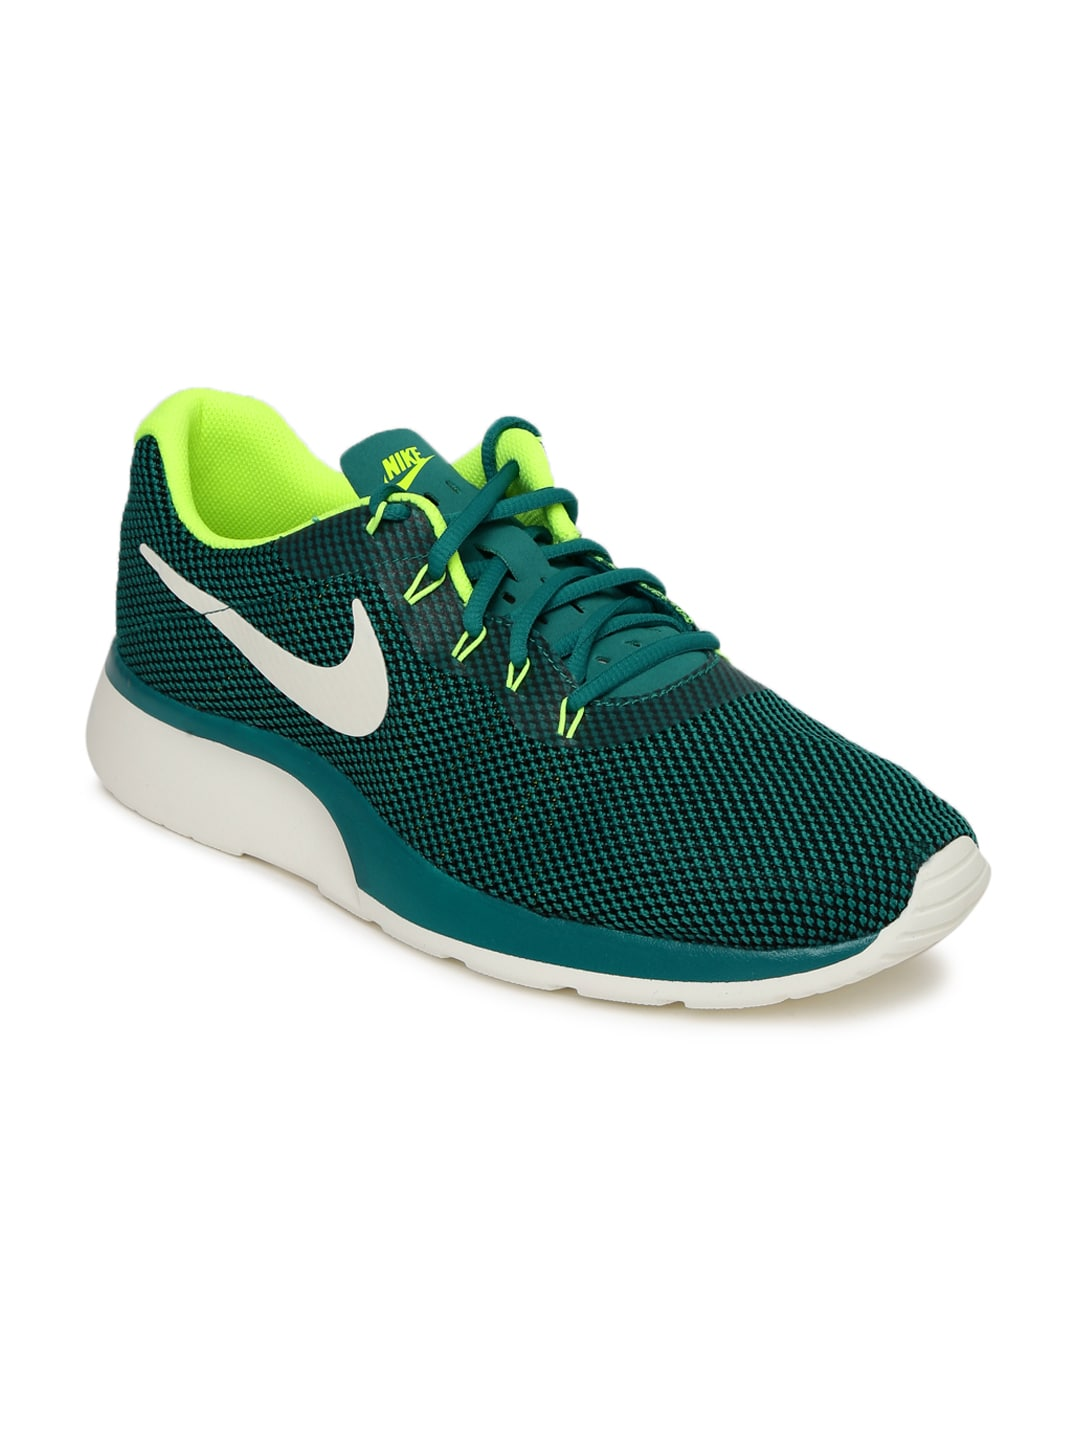 Nike Men Teal & Fluorescent Green TANJUN RACER Colourblocked Sneakers image